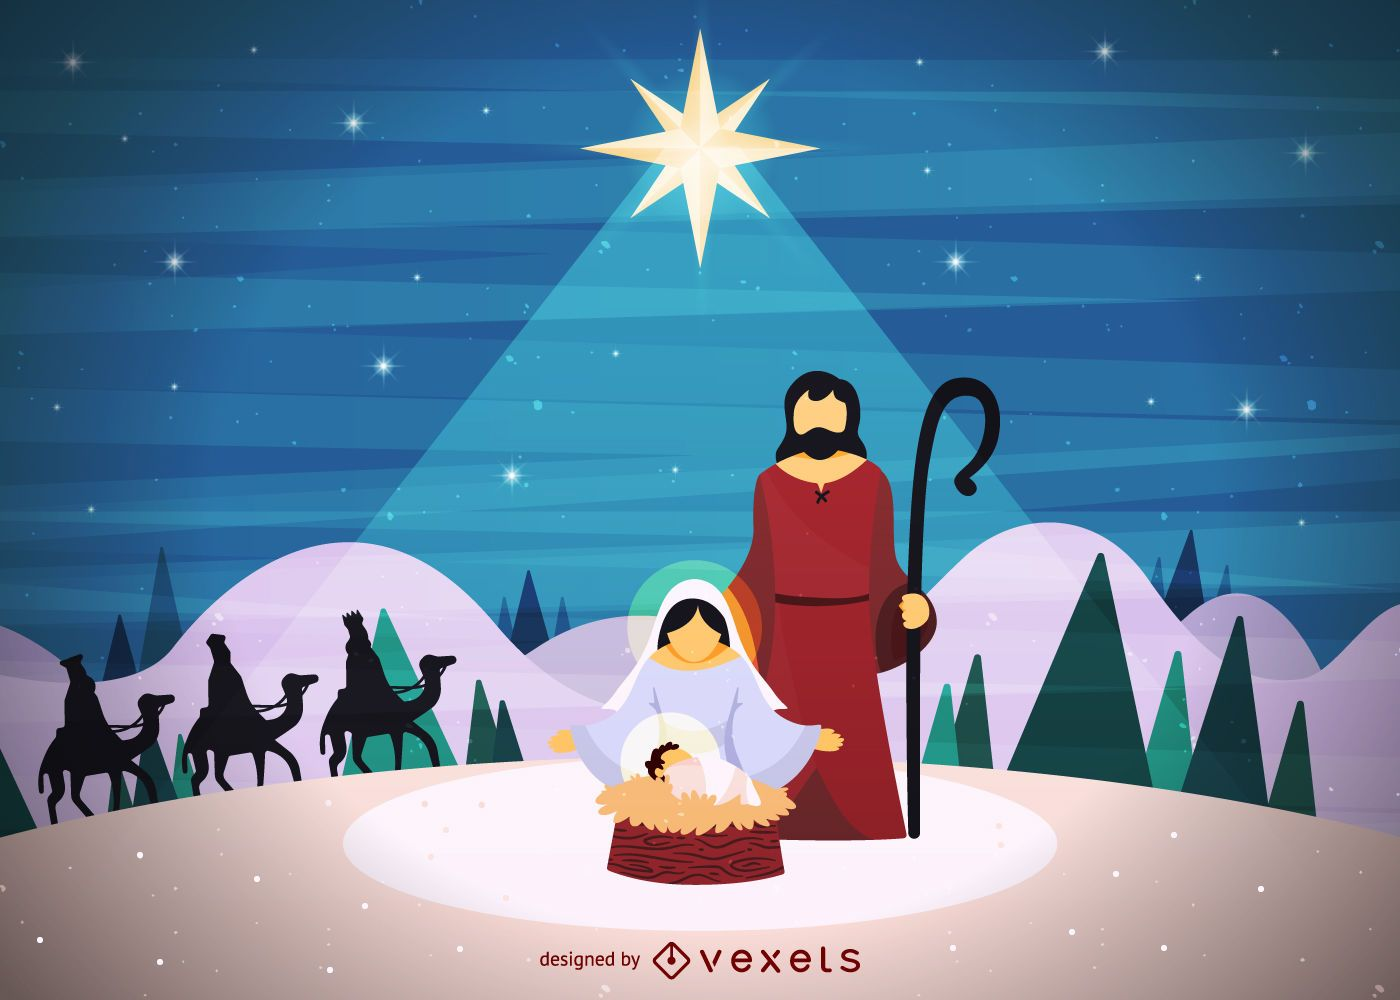 Christmas Nativity.Christmas Nativity Scen Vector Download